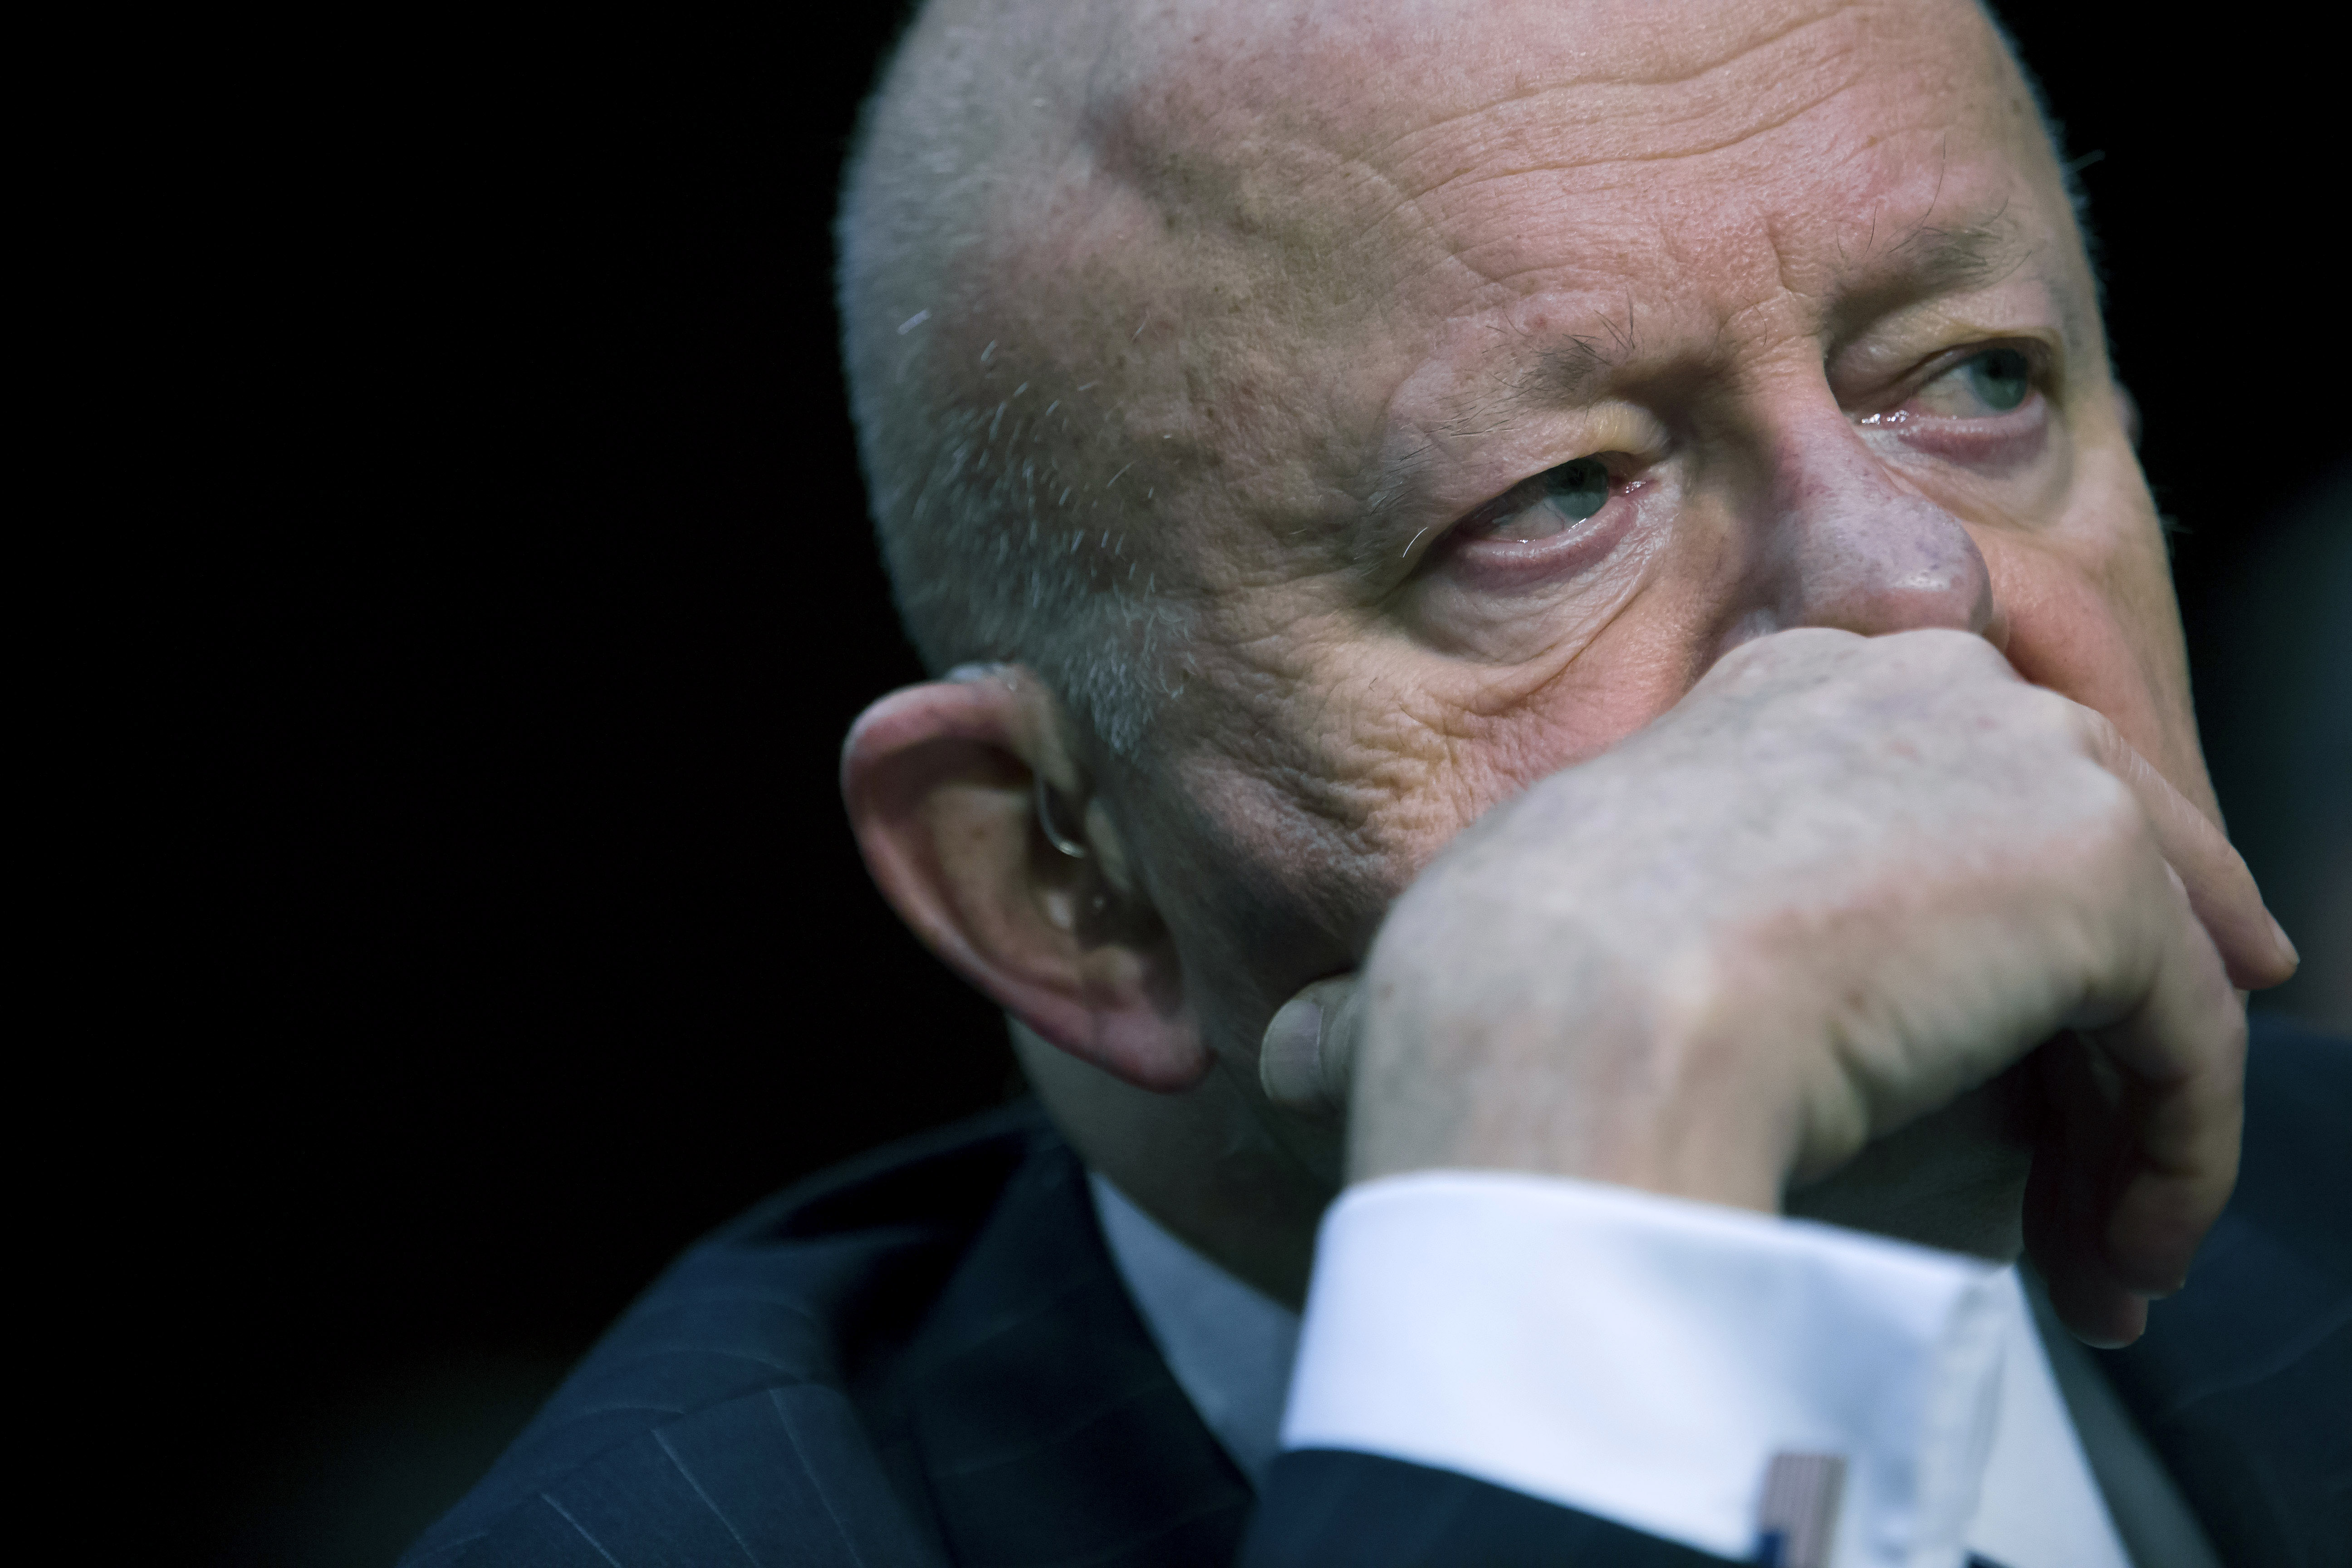 Facebook VP: Russia didn't mean to sway the 2016 election. Former intelligence director: Of course they did.